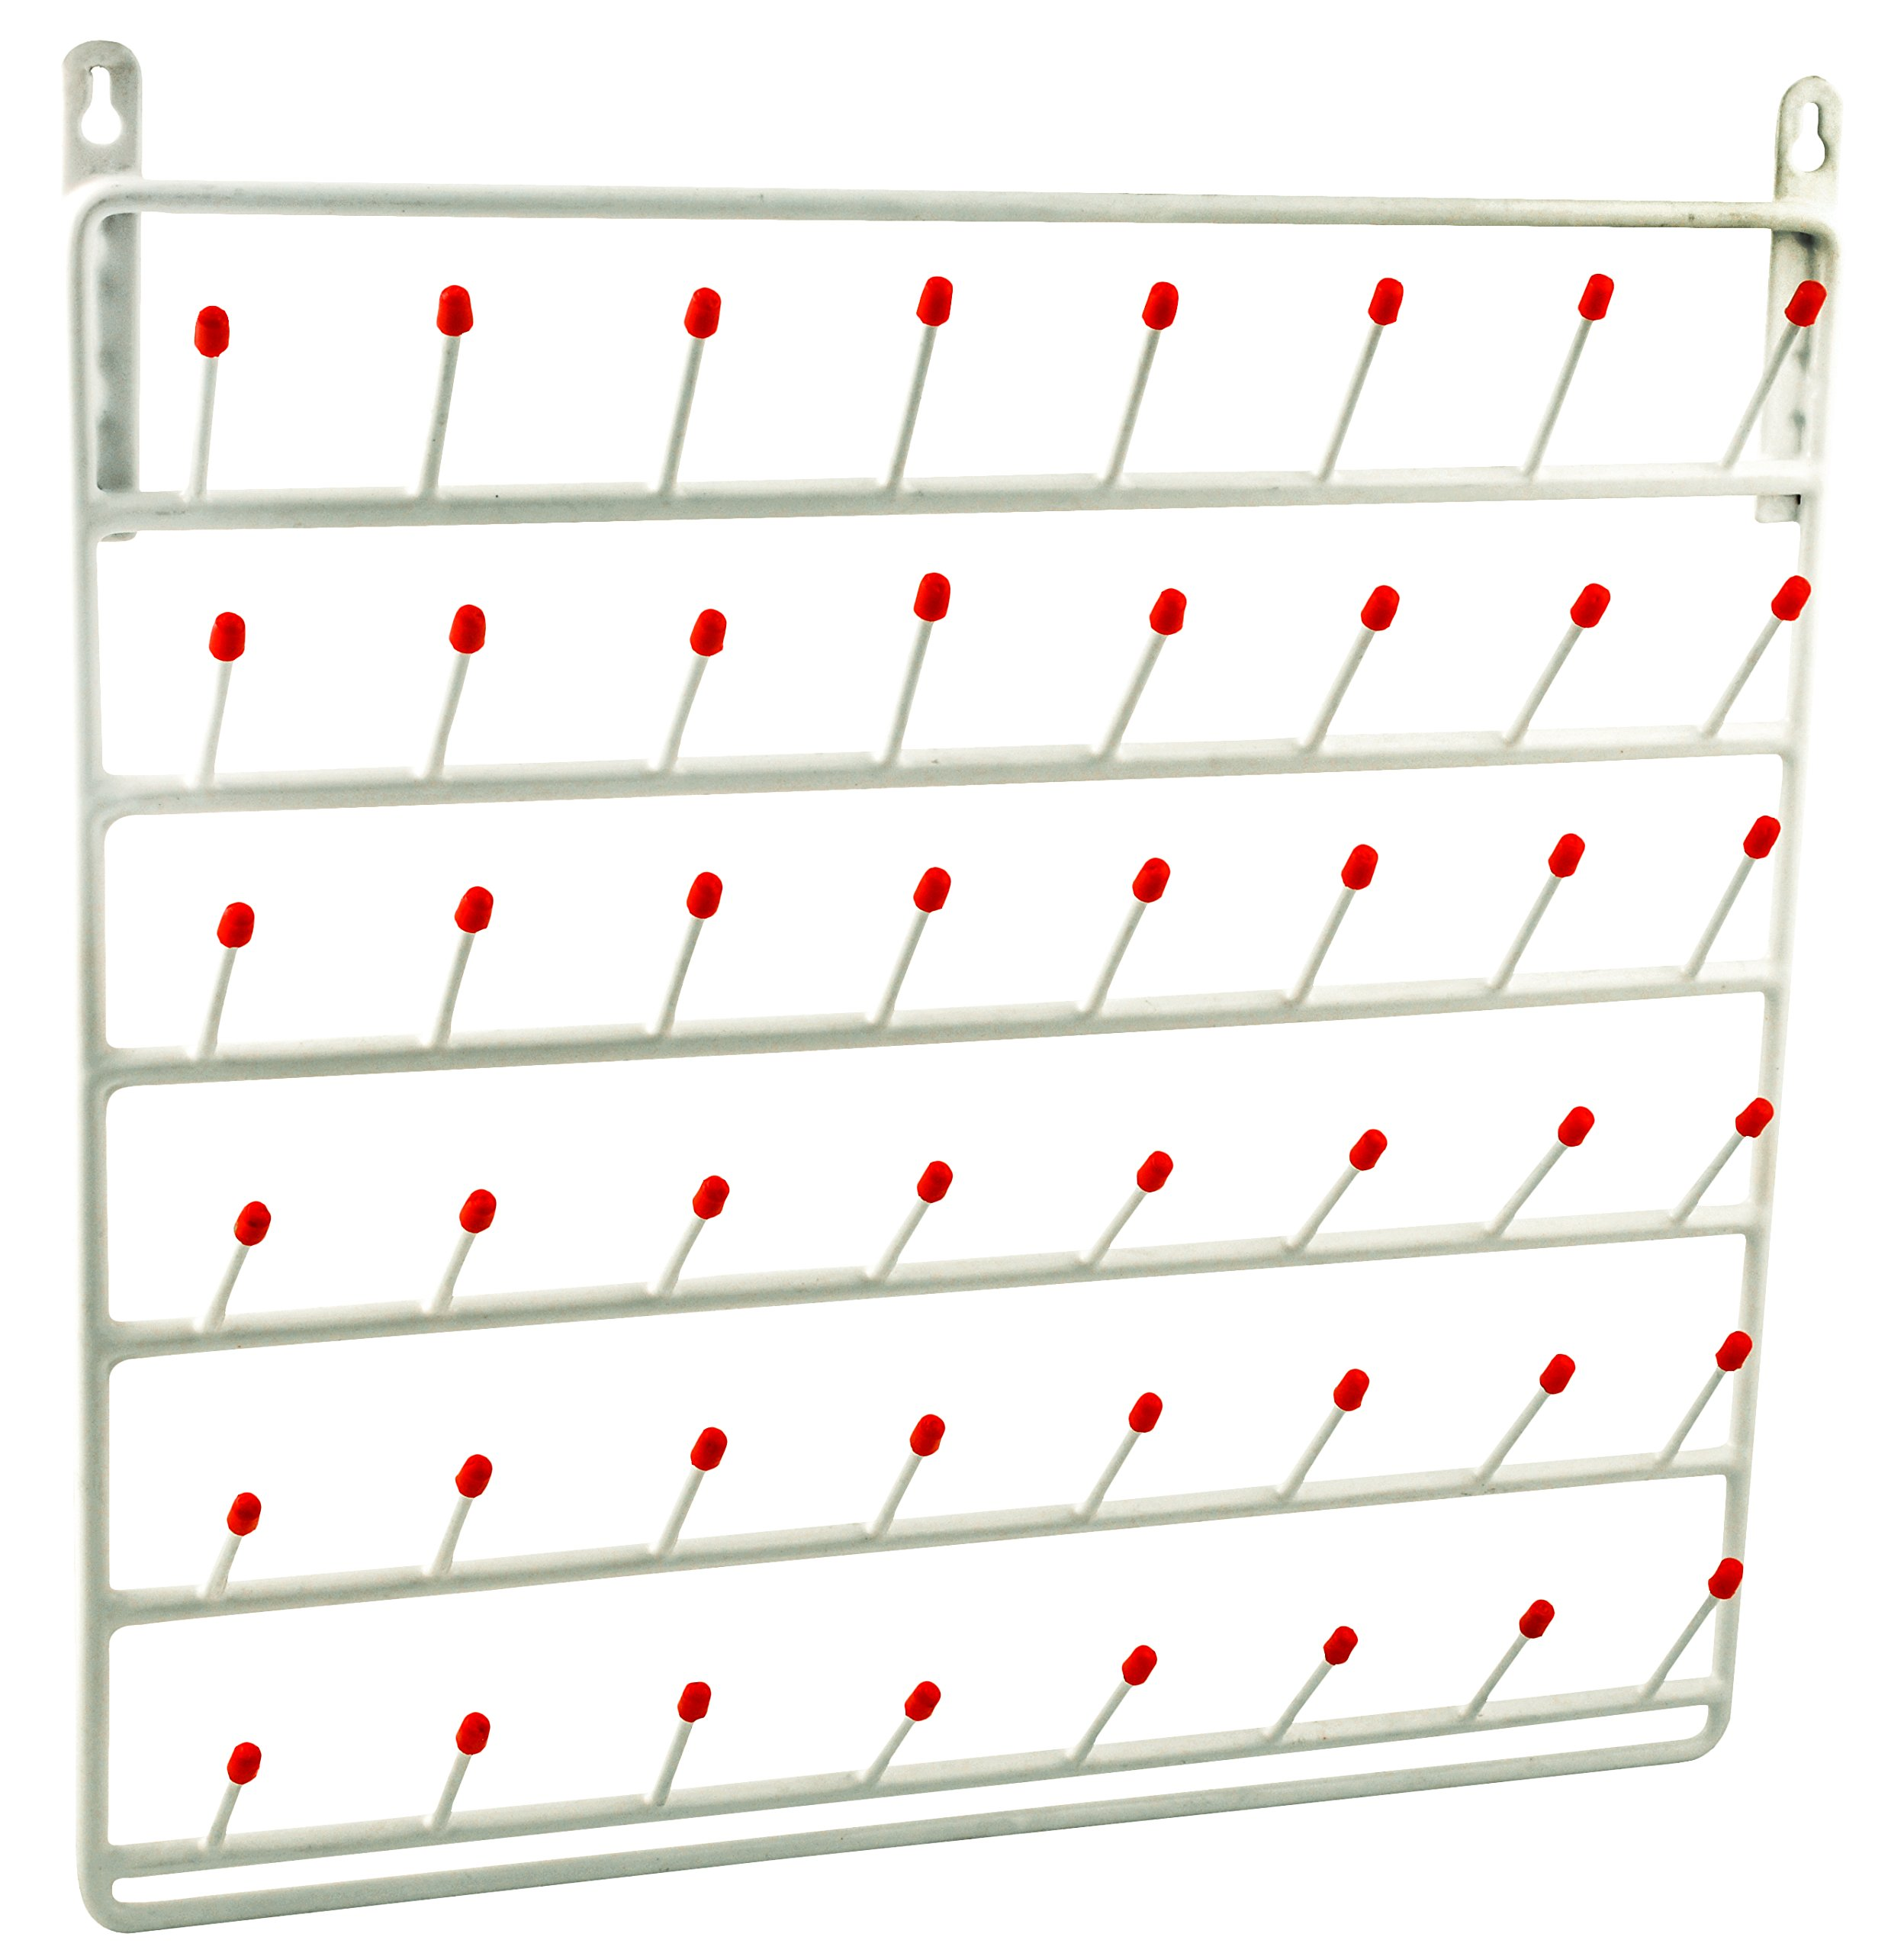 Draining Rack, 48 Pegs (2.75 Inch Pegs) - Wall Mountable, Vinyl Coated Steel - for Labware - Eisco Labs by EISCO